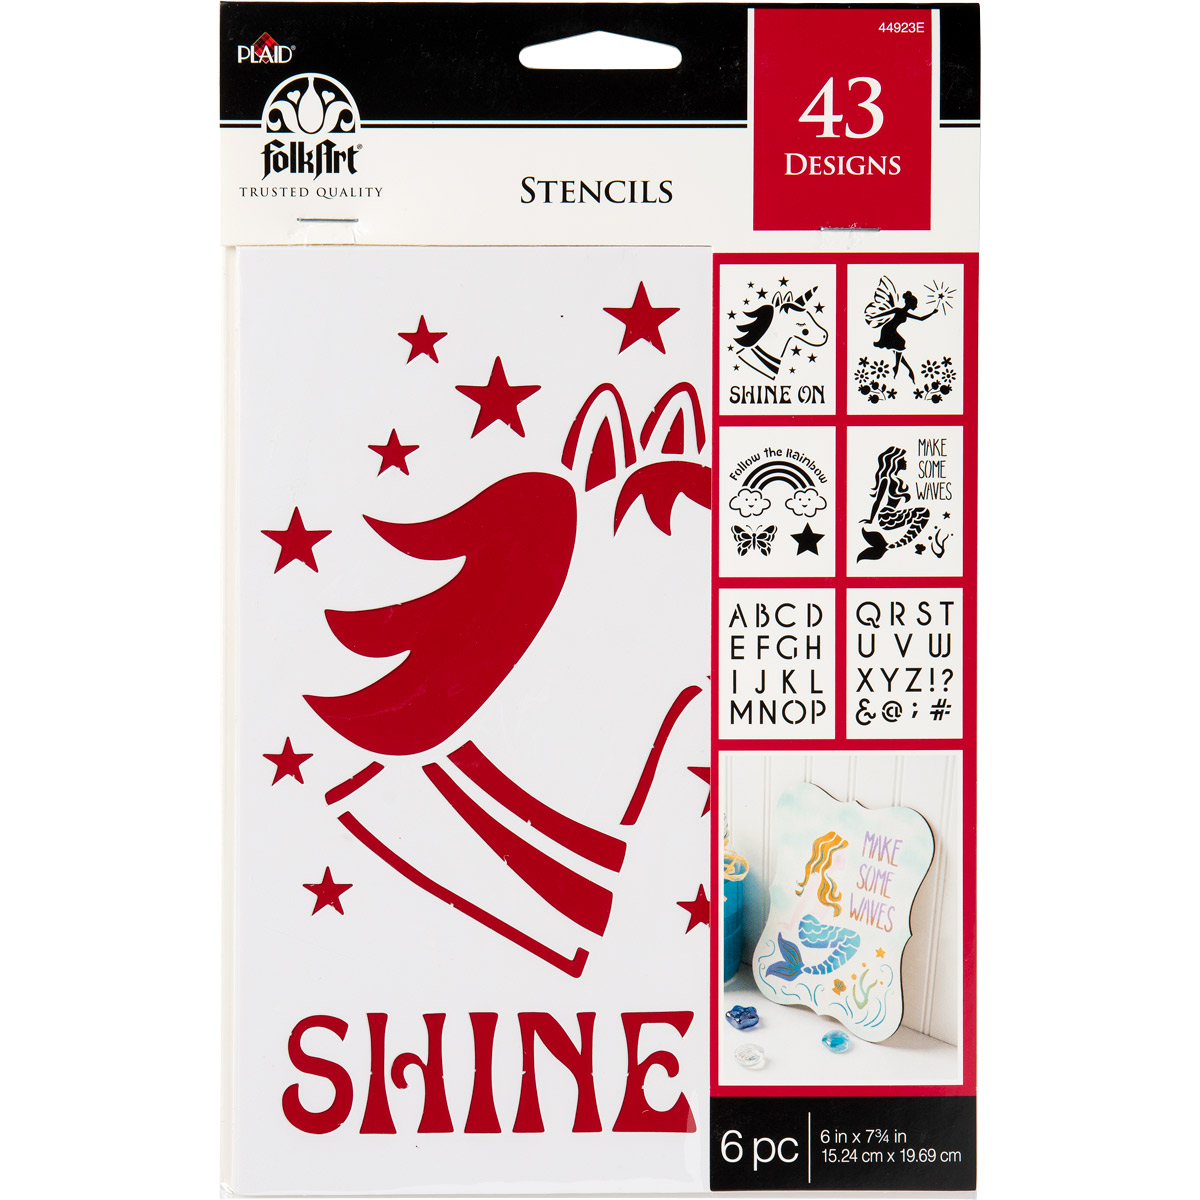 FolkArt ® Stencil Value Packs - Fantasy, 6